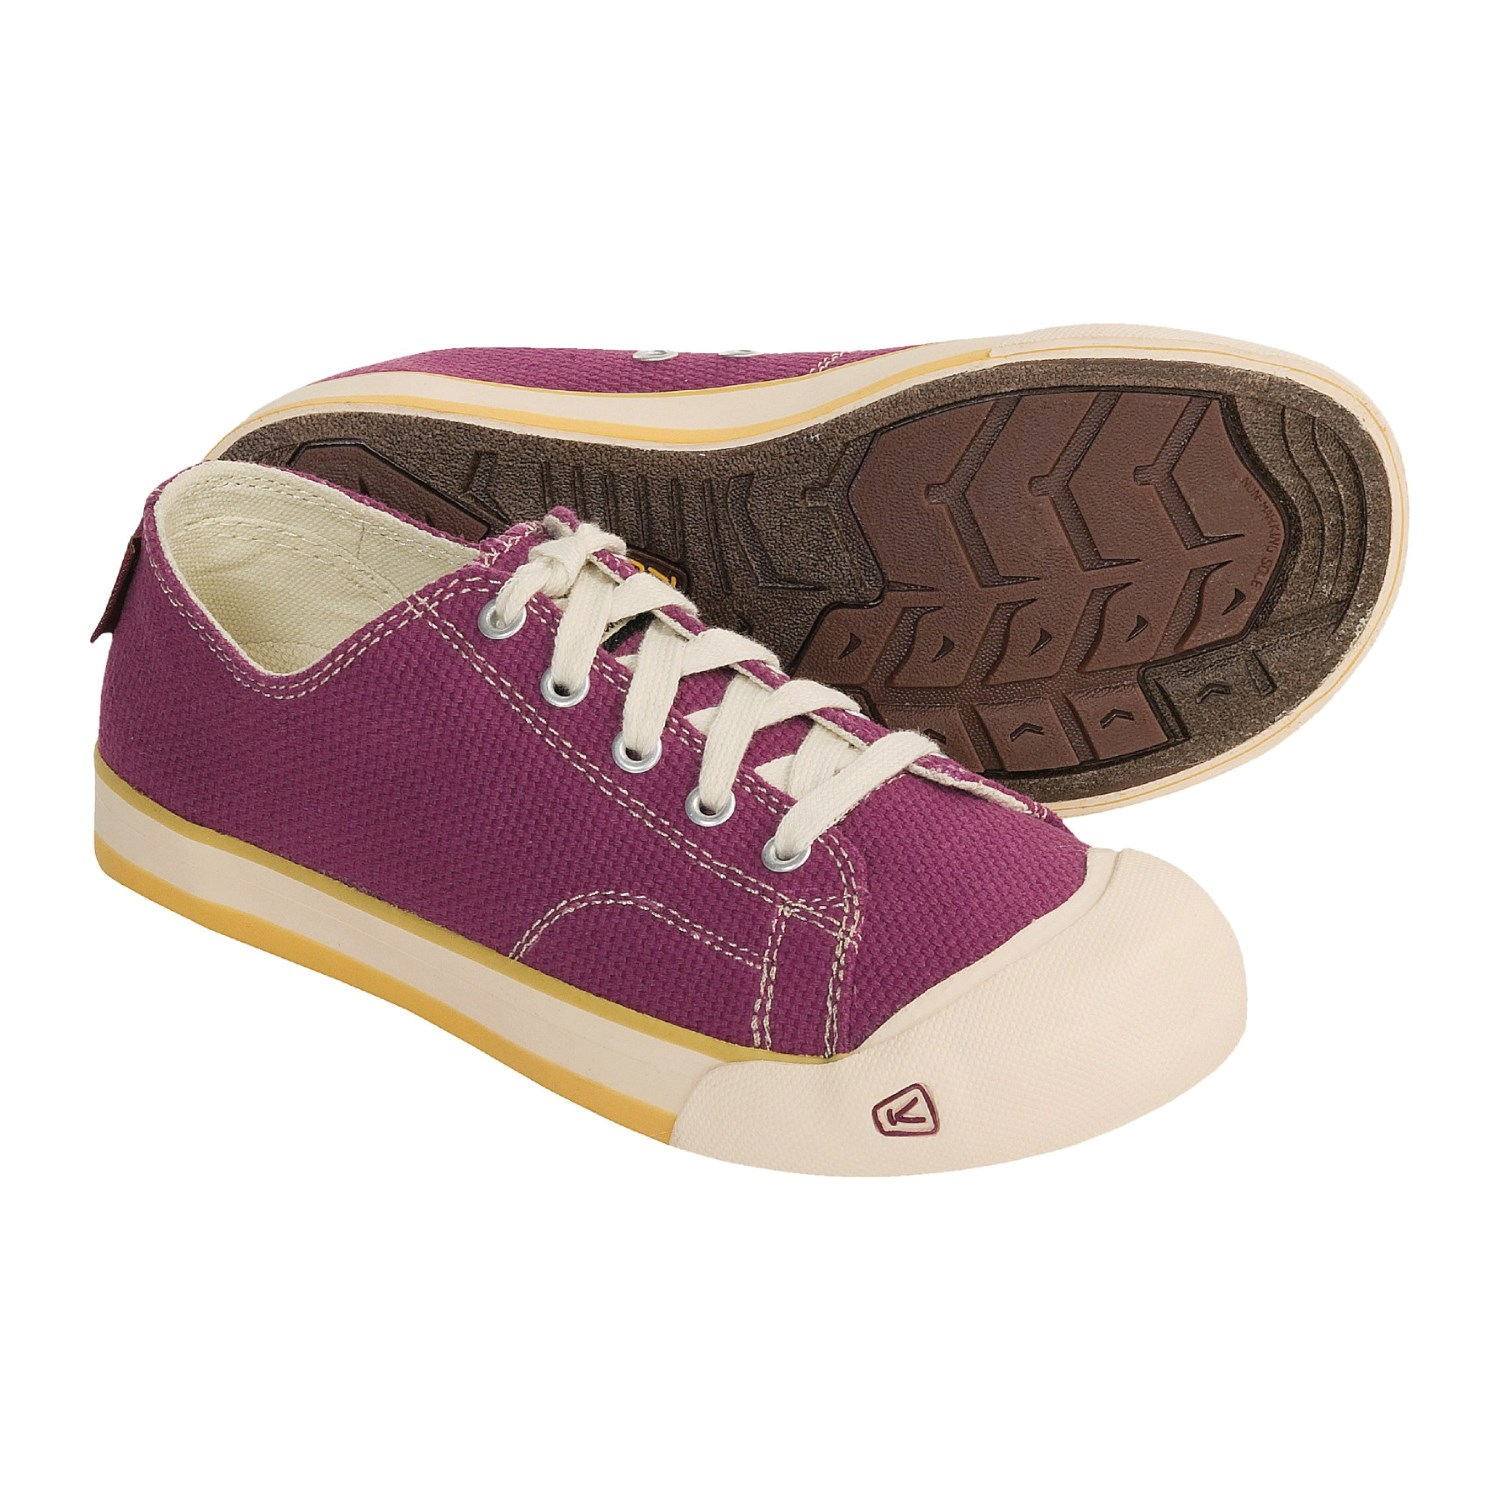 0aa411935fa3 Keen Coronado Canvas Shoes (For Youth) 2274A 51 on PopScreen